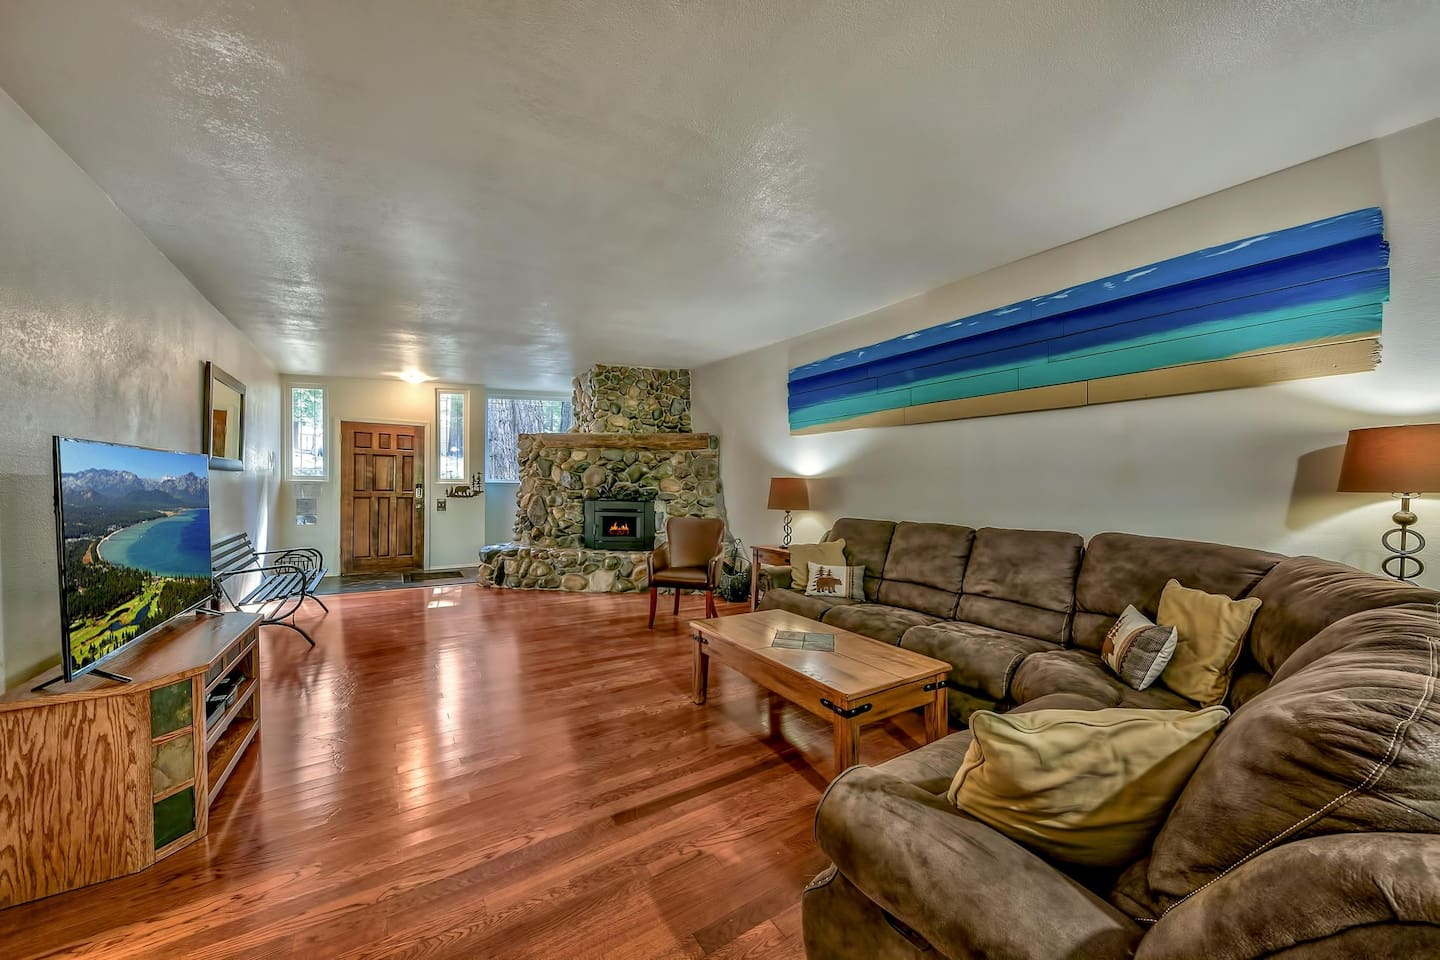 Fun for the whole family! Gather in the large living room with fireplace (now a wood-stove insert), HDTV, and views of the forest outside